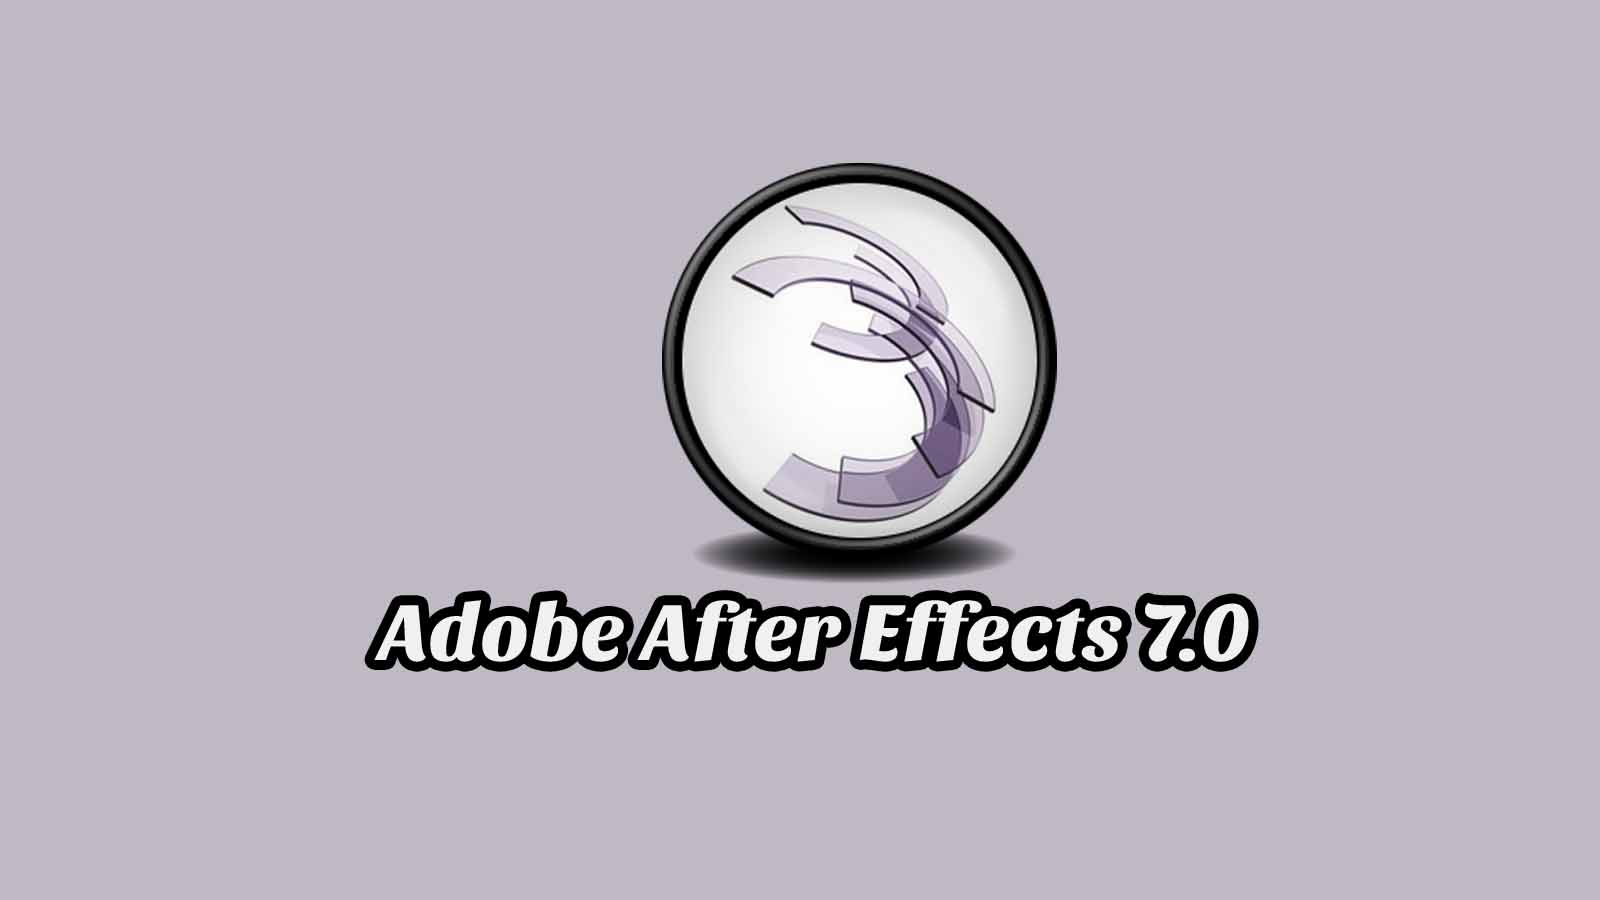 Daftar Isi Adobe After Effects 7.0